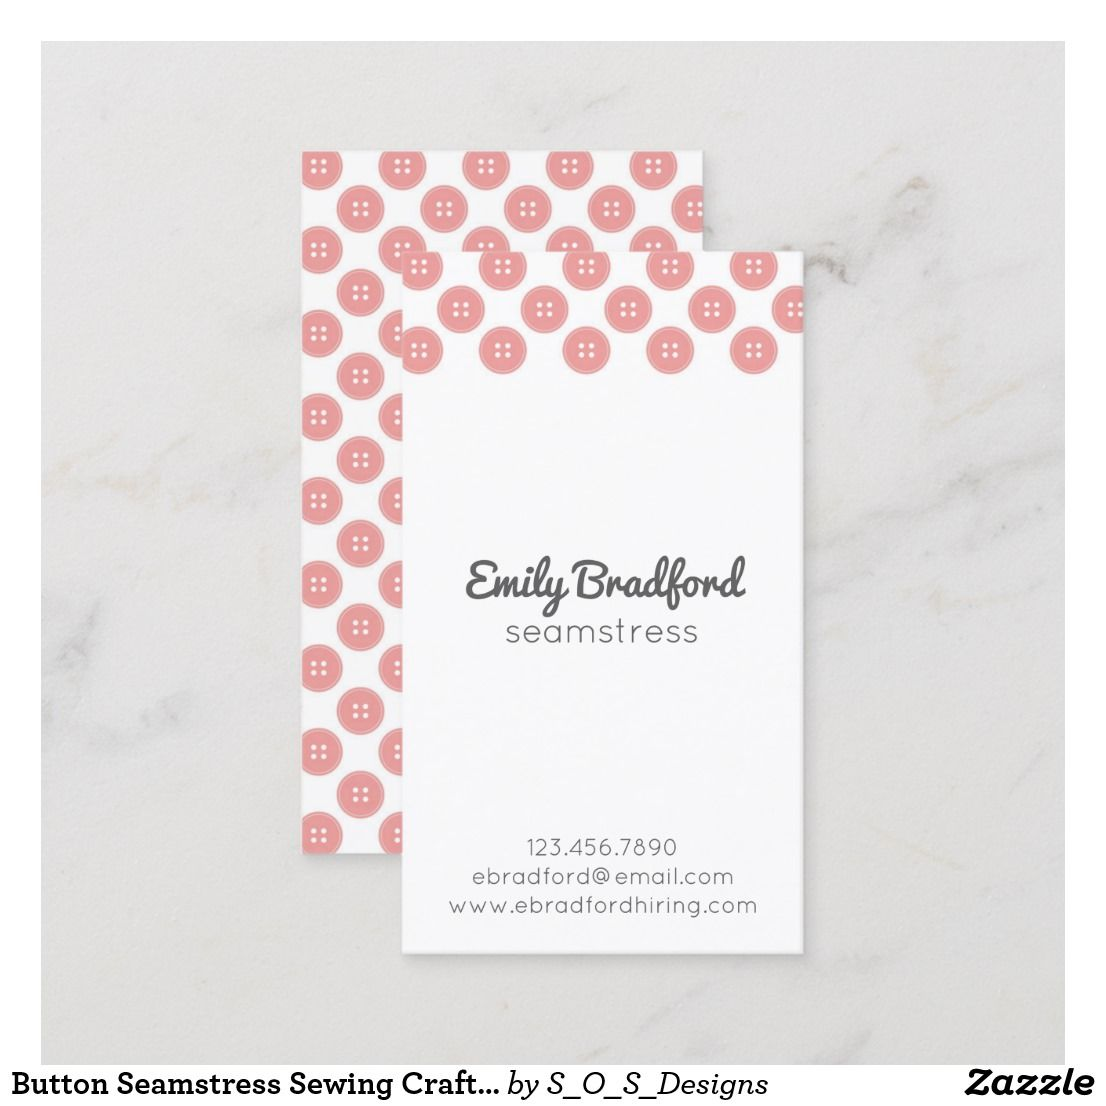 Button Seamstress Sewing Crafter Business Cards Zazzle Com Scrapbooking Business Sewing Business Cards